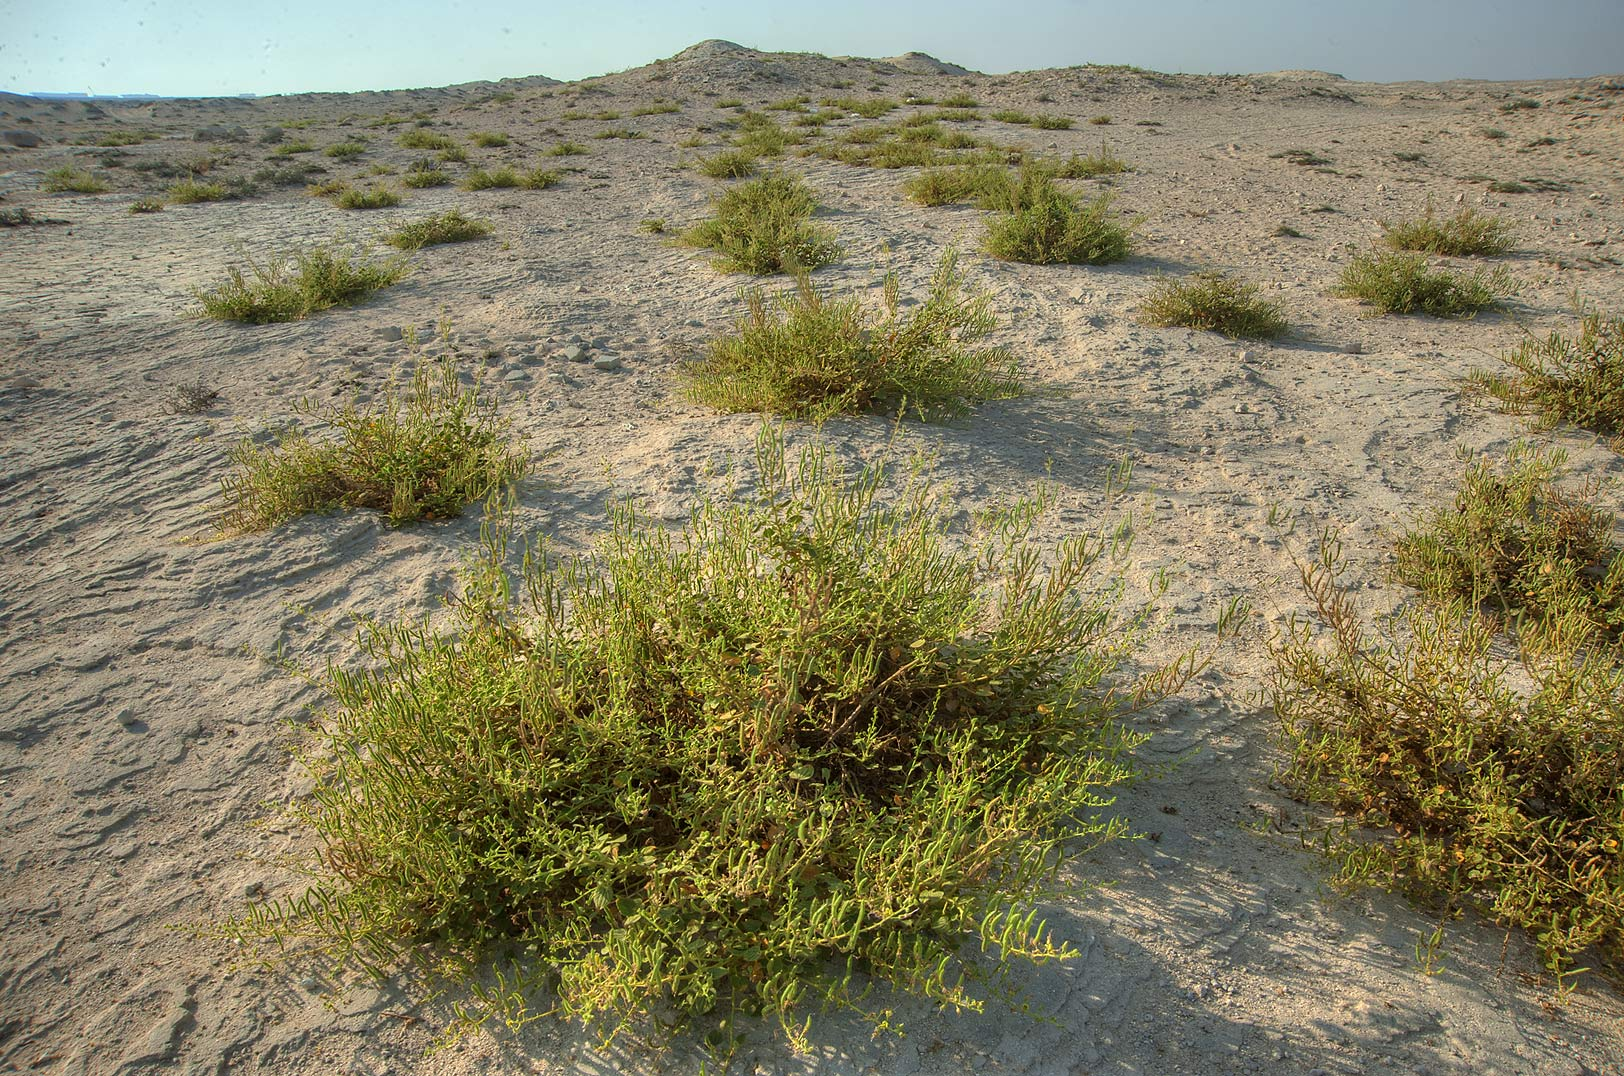 Plants of Cleome noeana with seeds growing on rocky terrain near Fuwairit. Northern Qatar